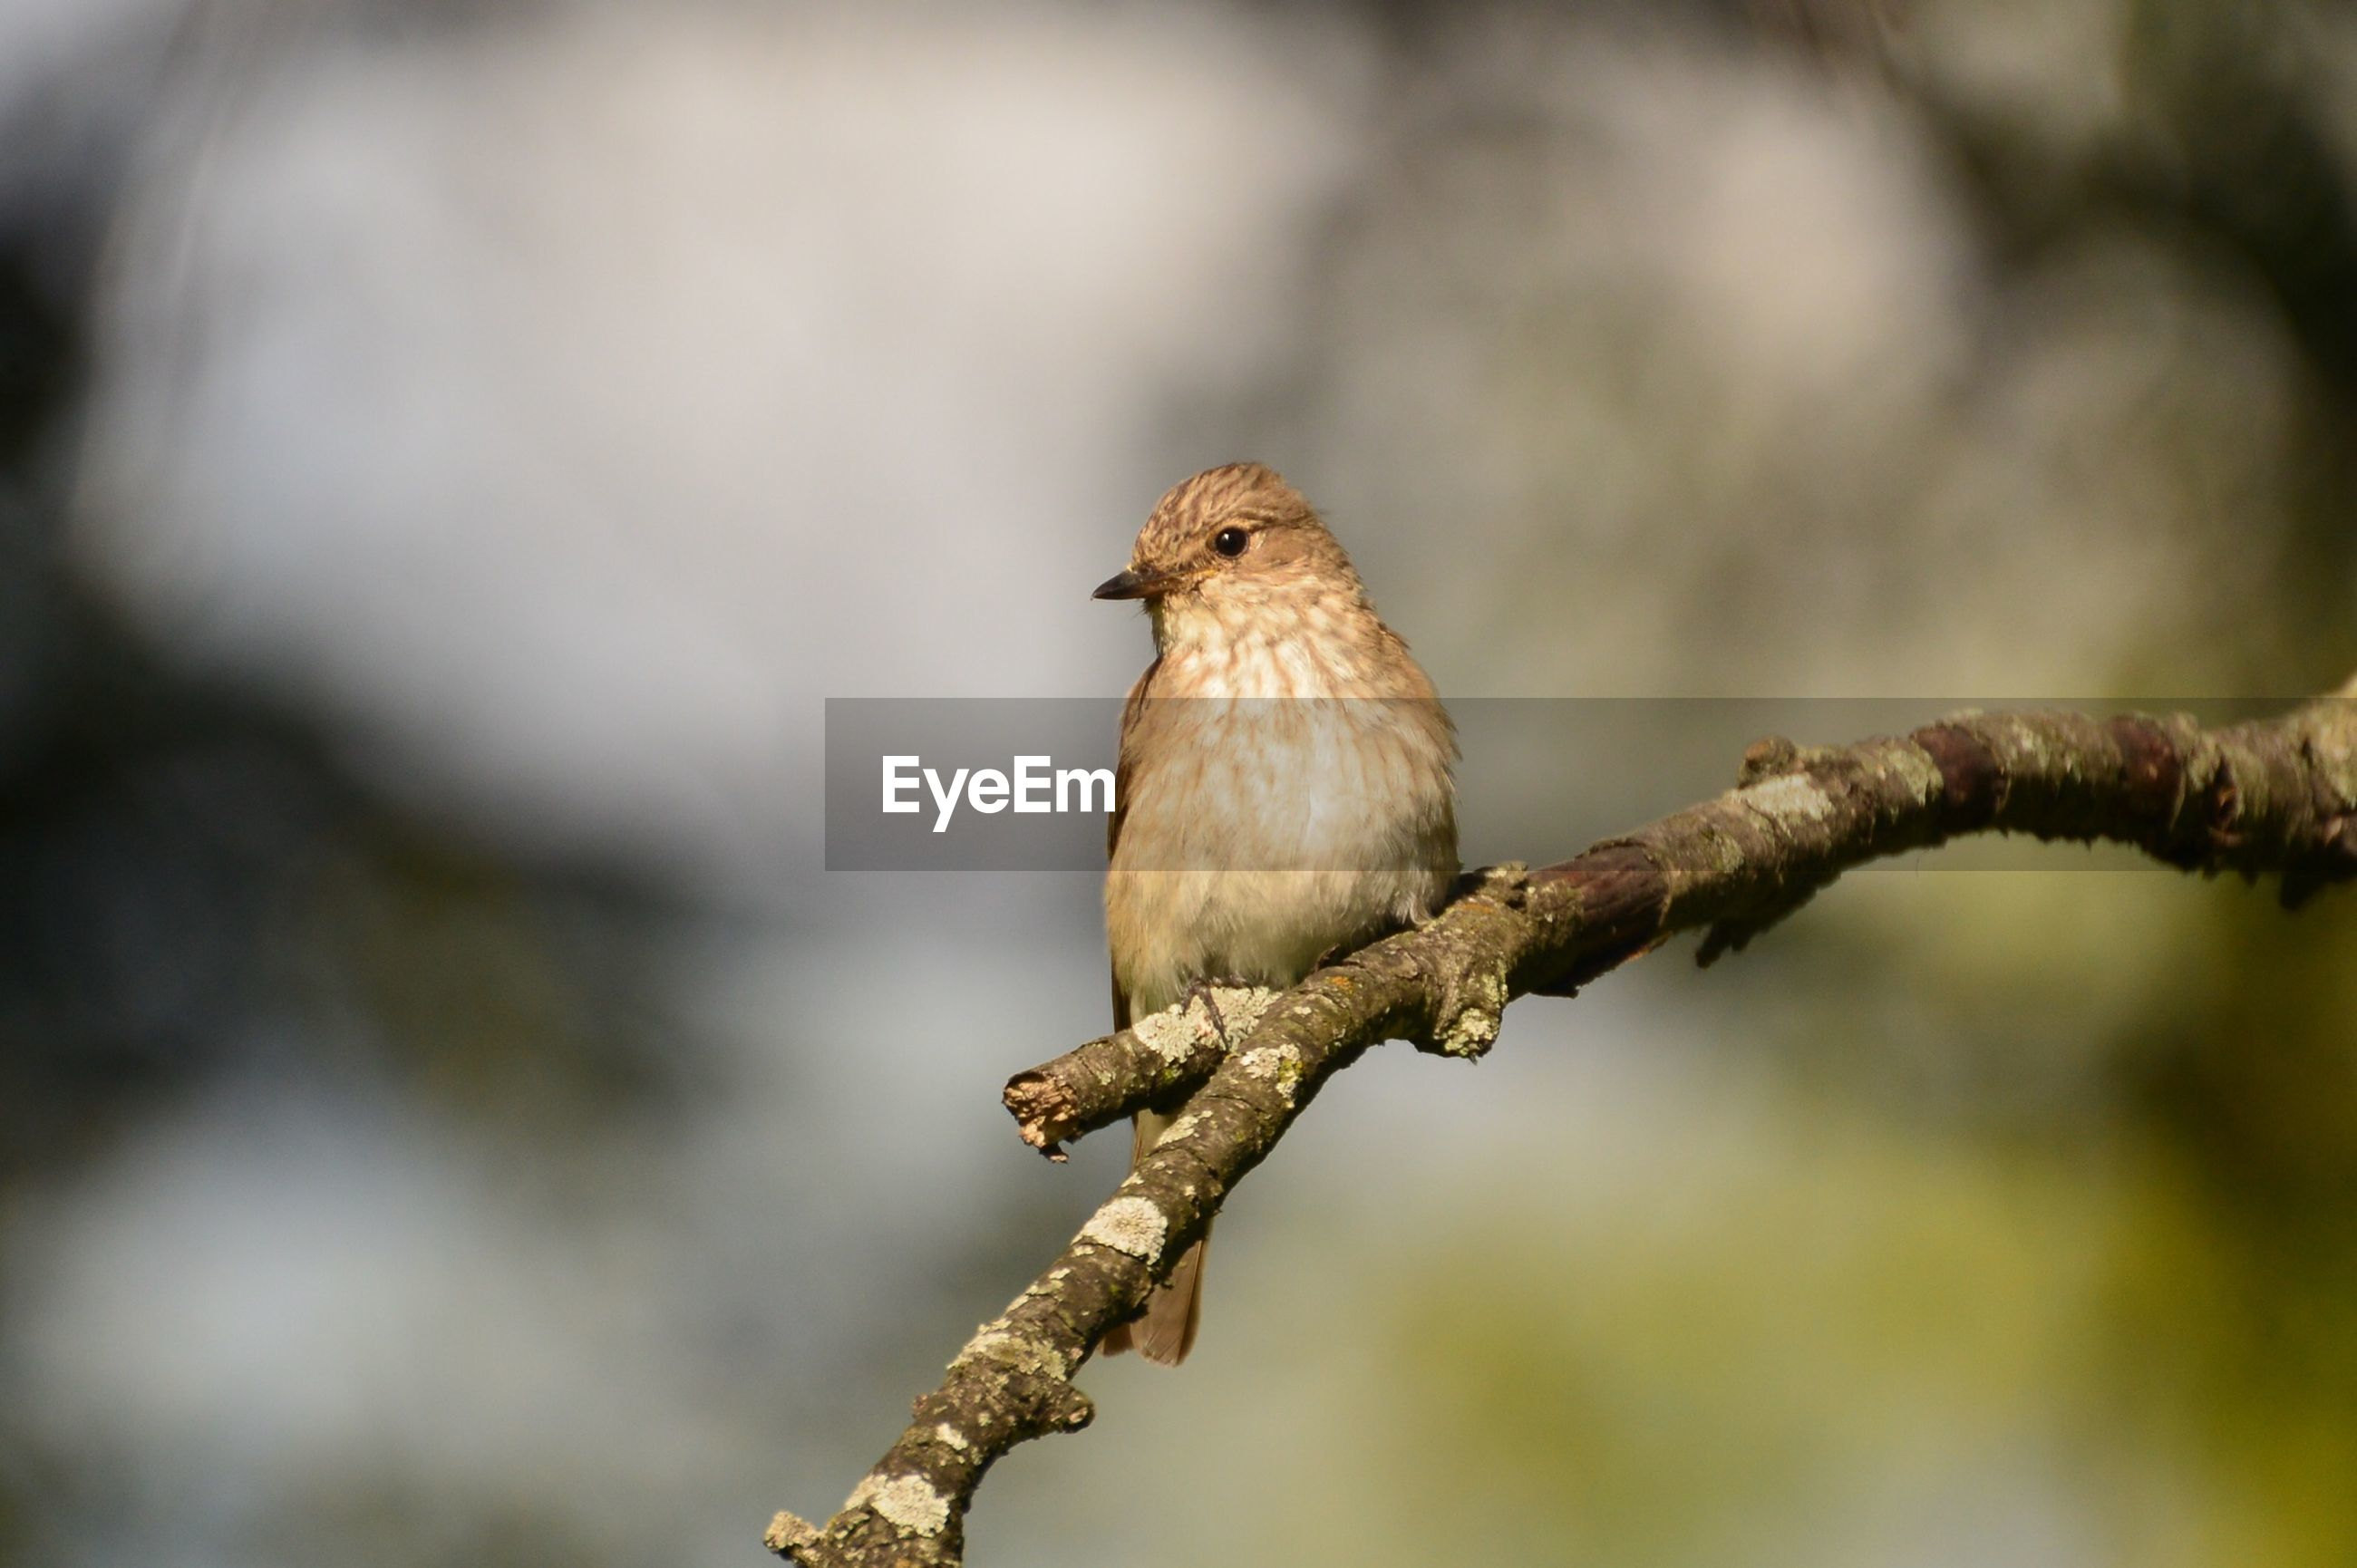 animal themes, animals in the wild, one animal, wildlife, perching, bird, branch, focus on foreground, full length, nature, tree, close-up, twig, outdoors, day, selective focus, zoology, no people, low angle view, side view